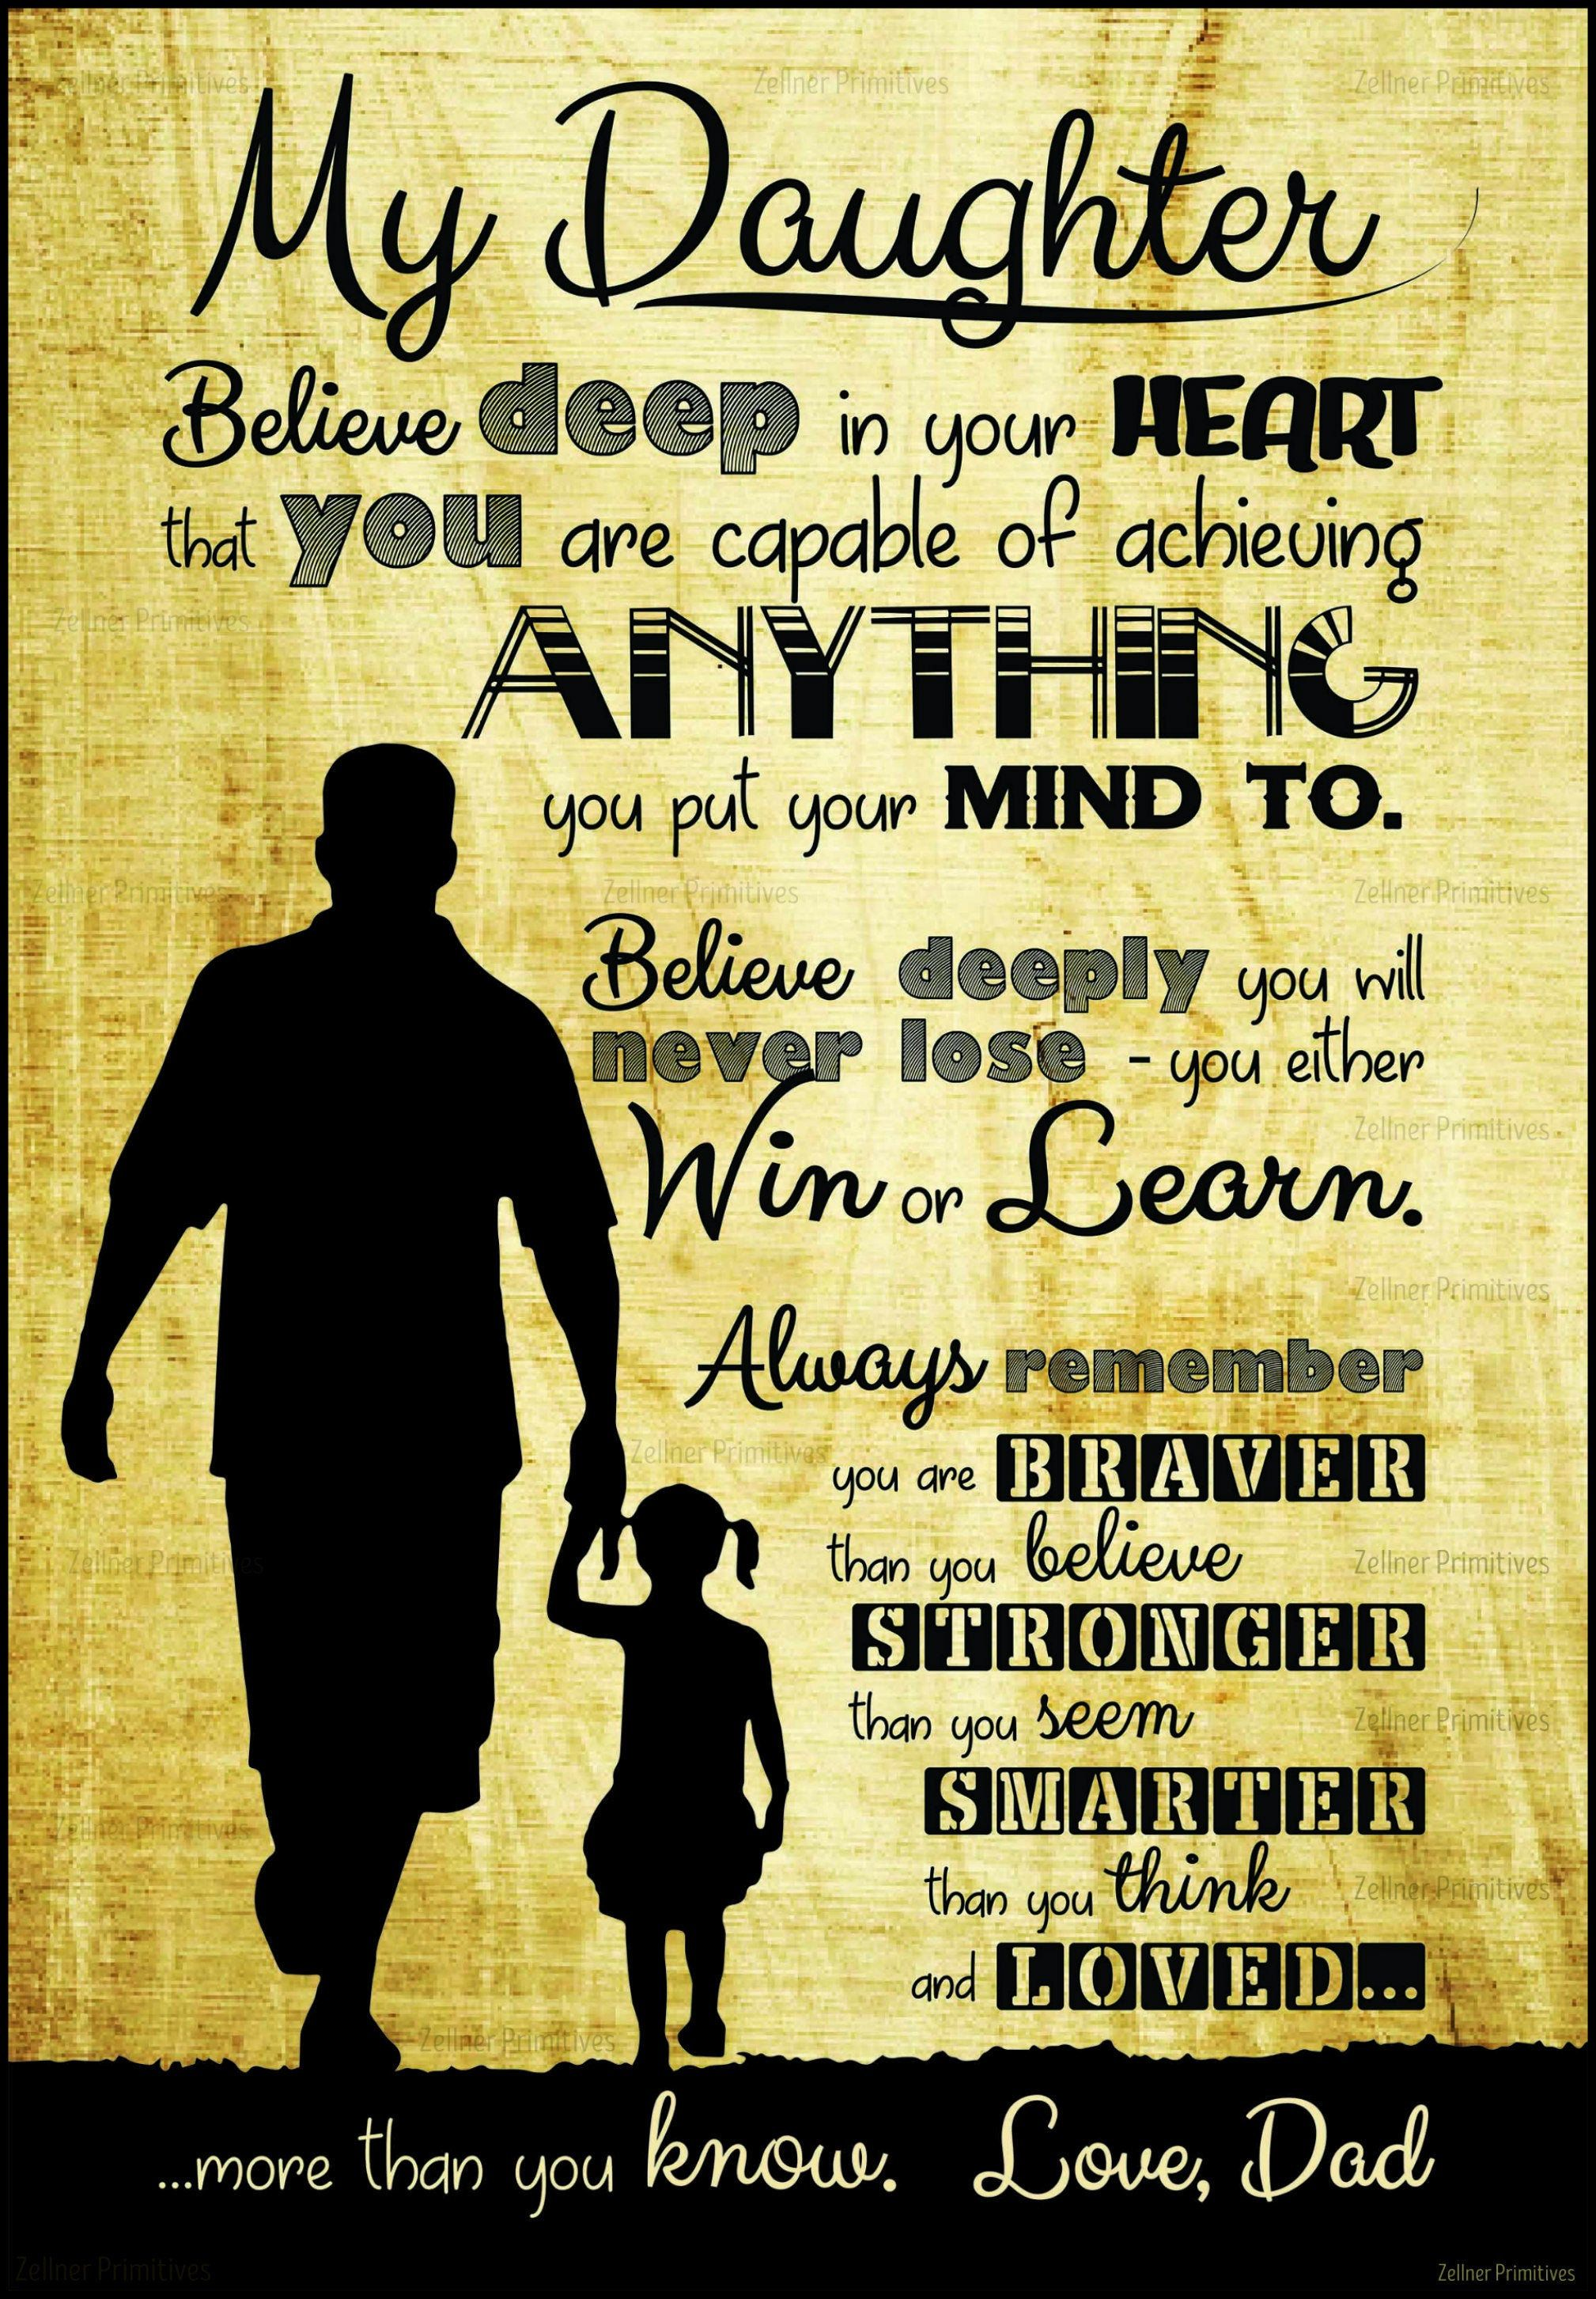 My Daughter / Gift from dad or mom / Print adhered